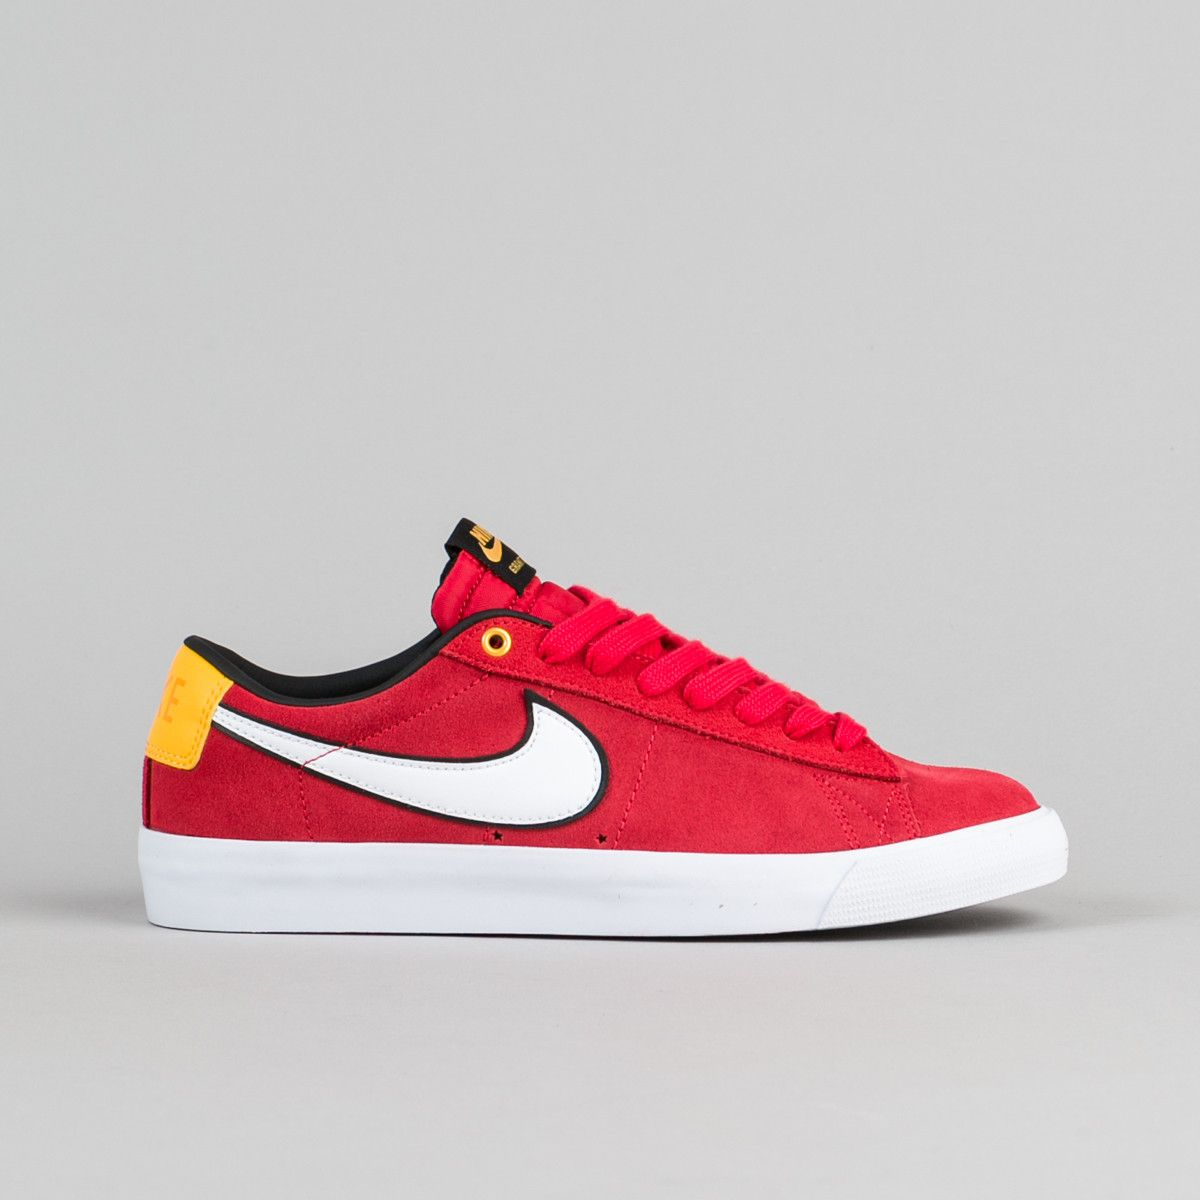 low priced 243fc 119f7 store university red nike hyperdunk x release 930e2 abcfb  coupon for nike  sb blazer low gt university red b868b c8a85